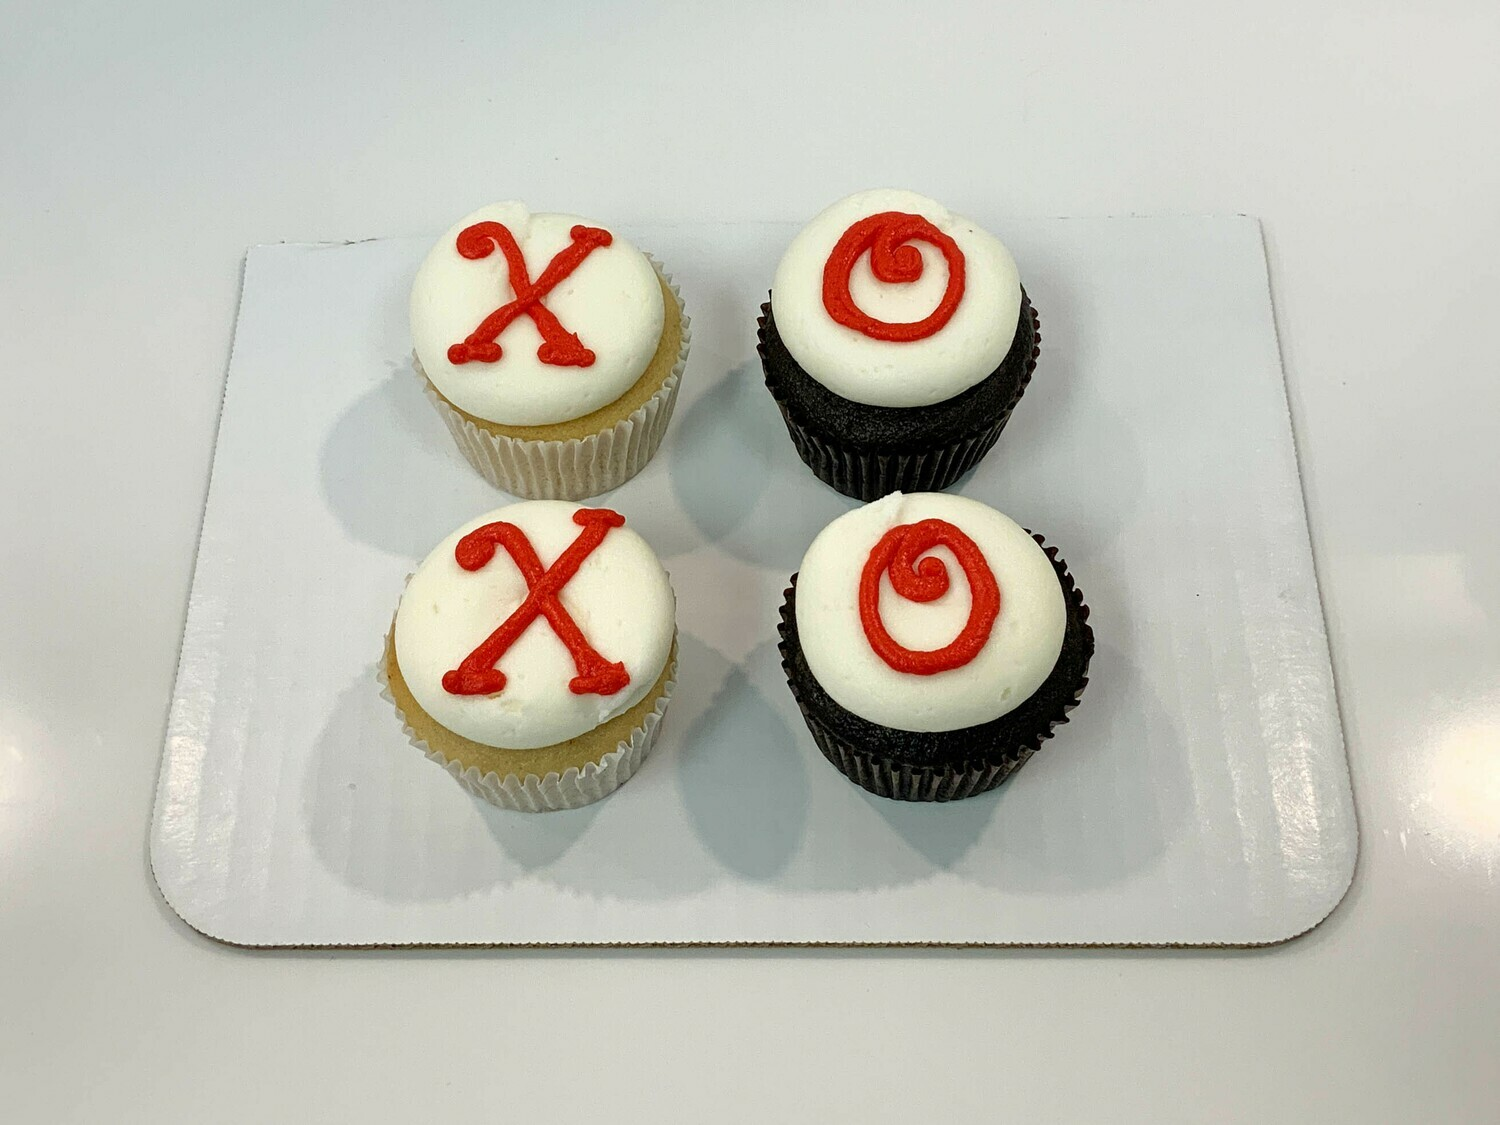 Xoxo 4 Pack Cupcakes